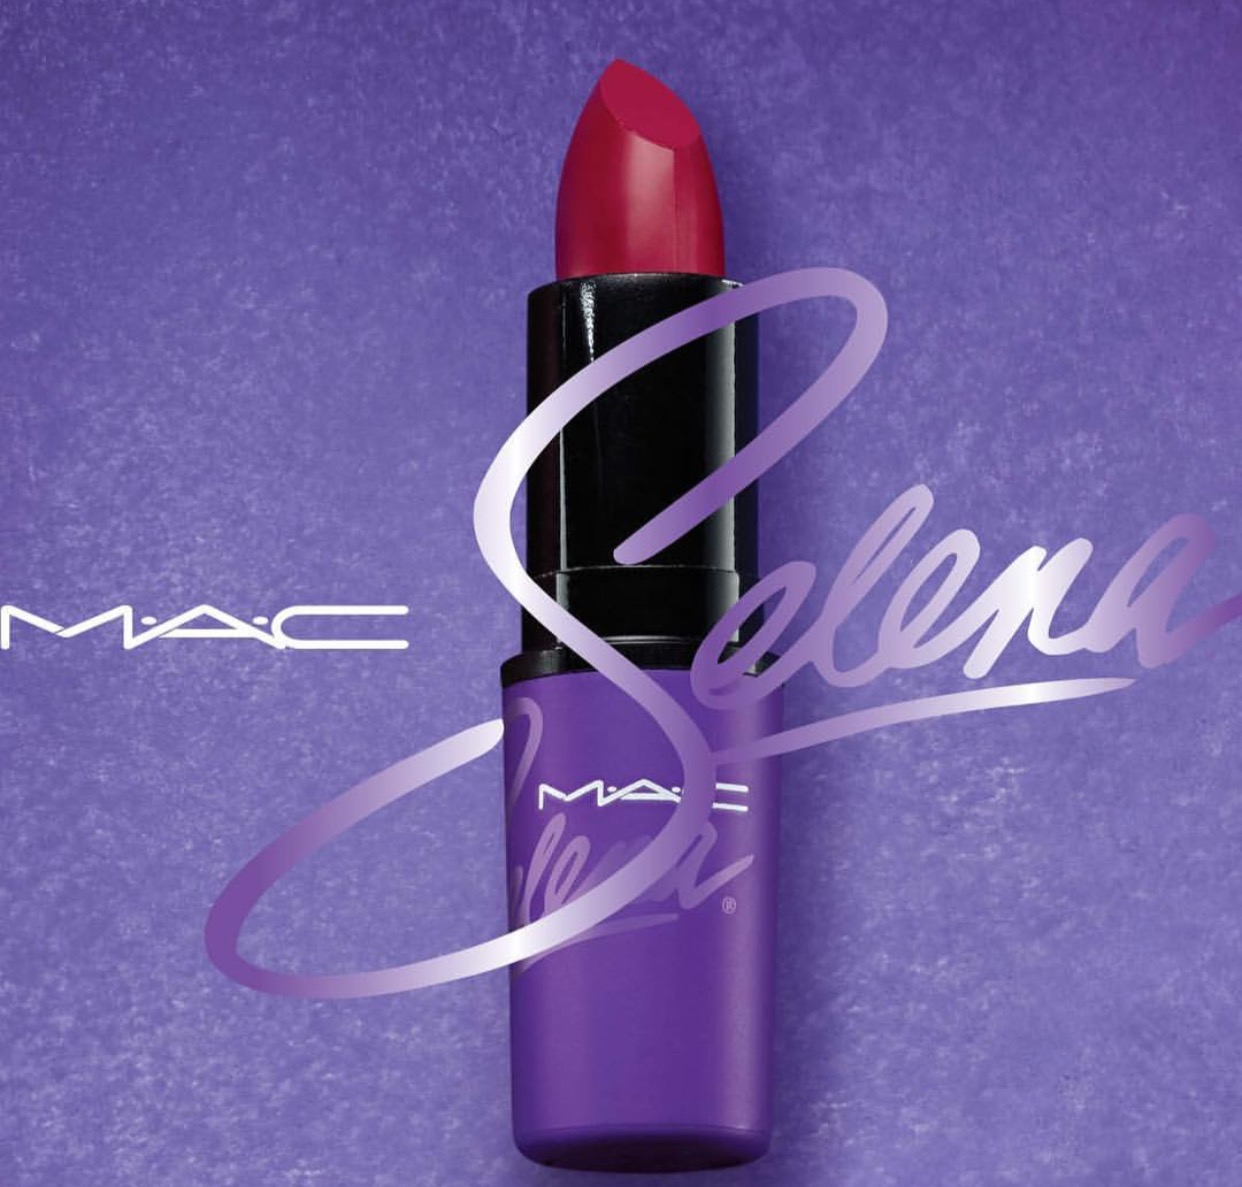 Preview Selena Como La Flor lipstick by MAC